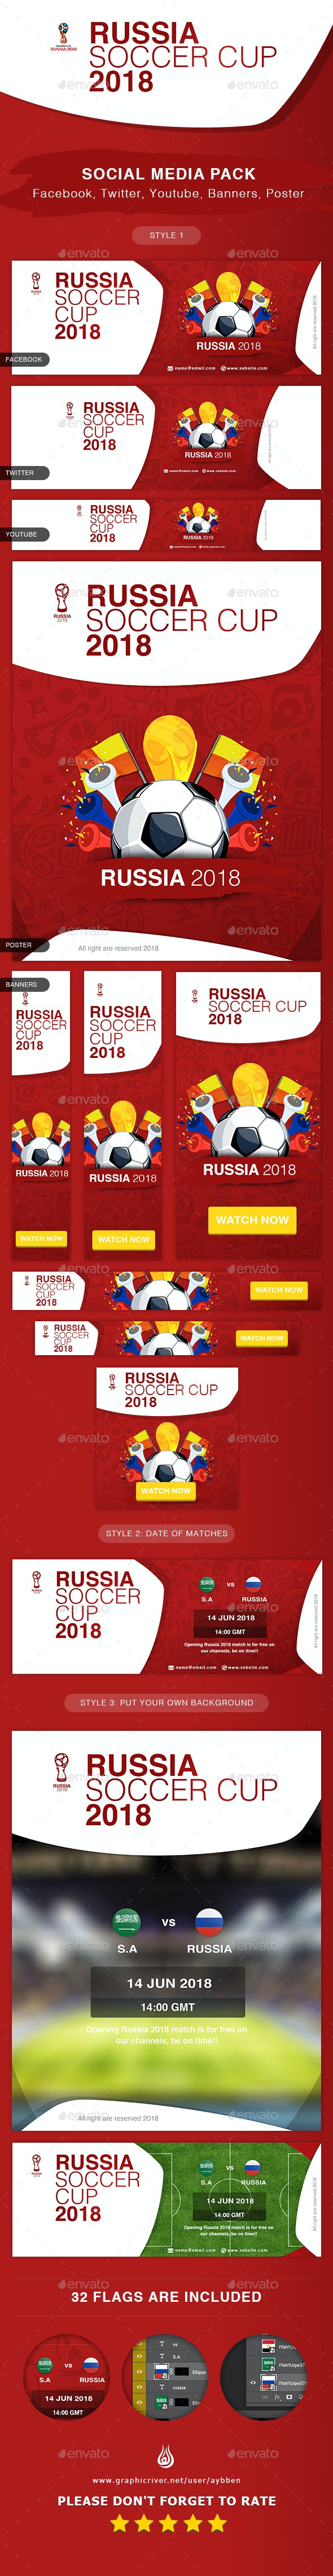 Russia Soccer Cup 2018 Kit - Web Elements